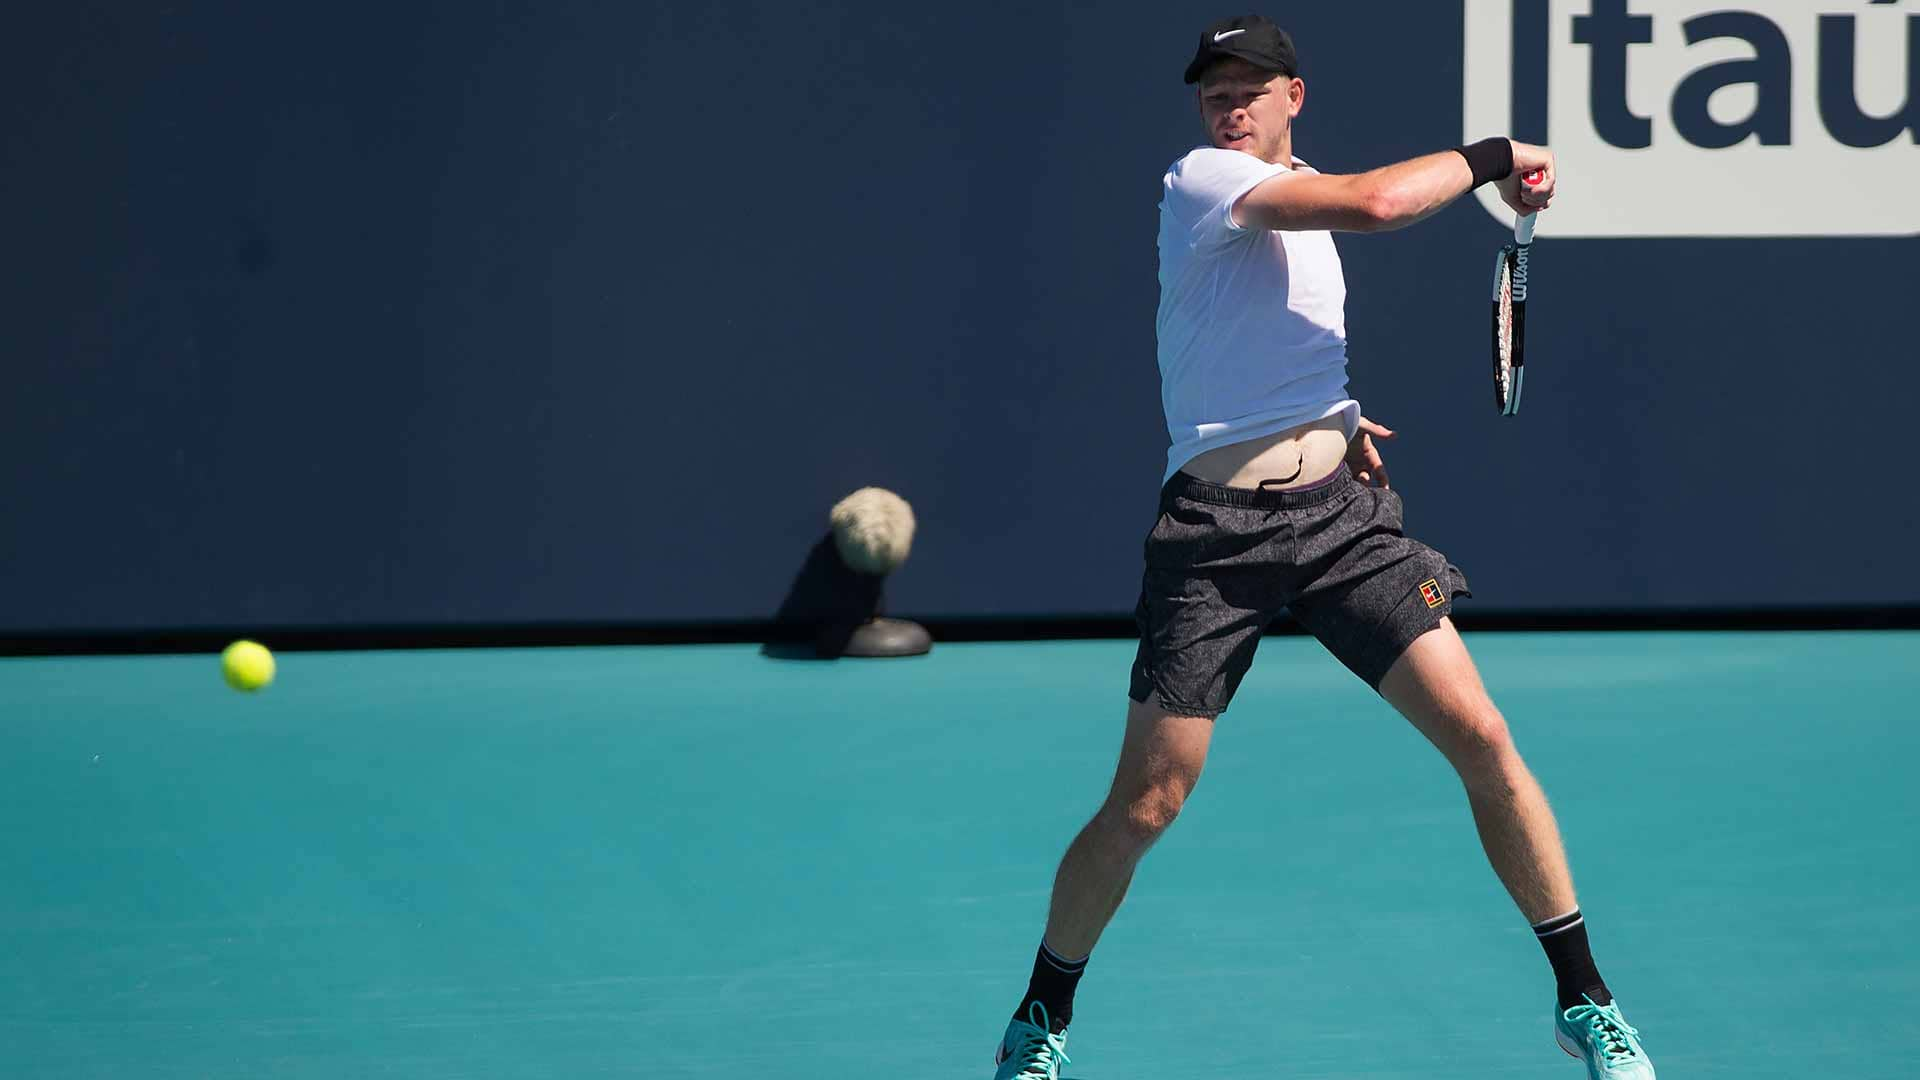 Kyle Edmund wins at the Miami Open presented by Itau